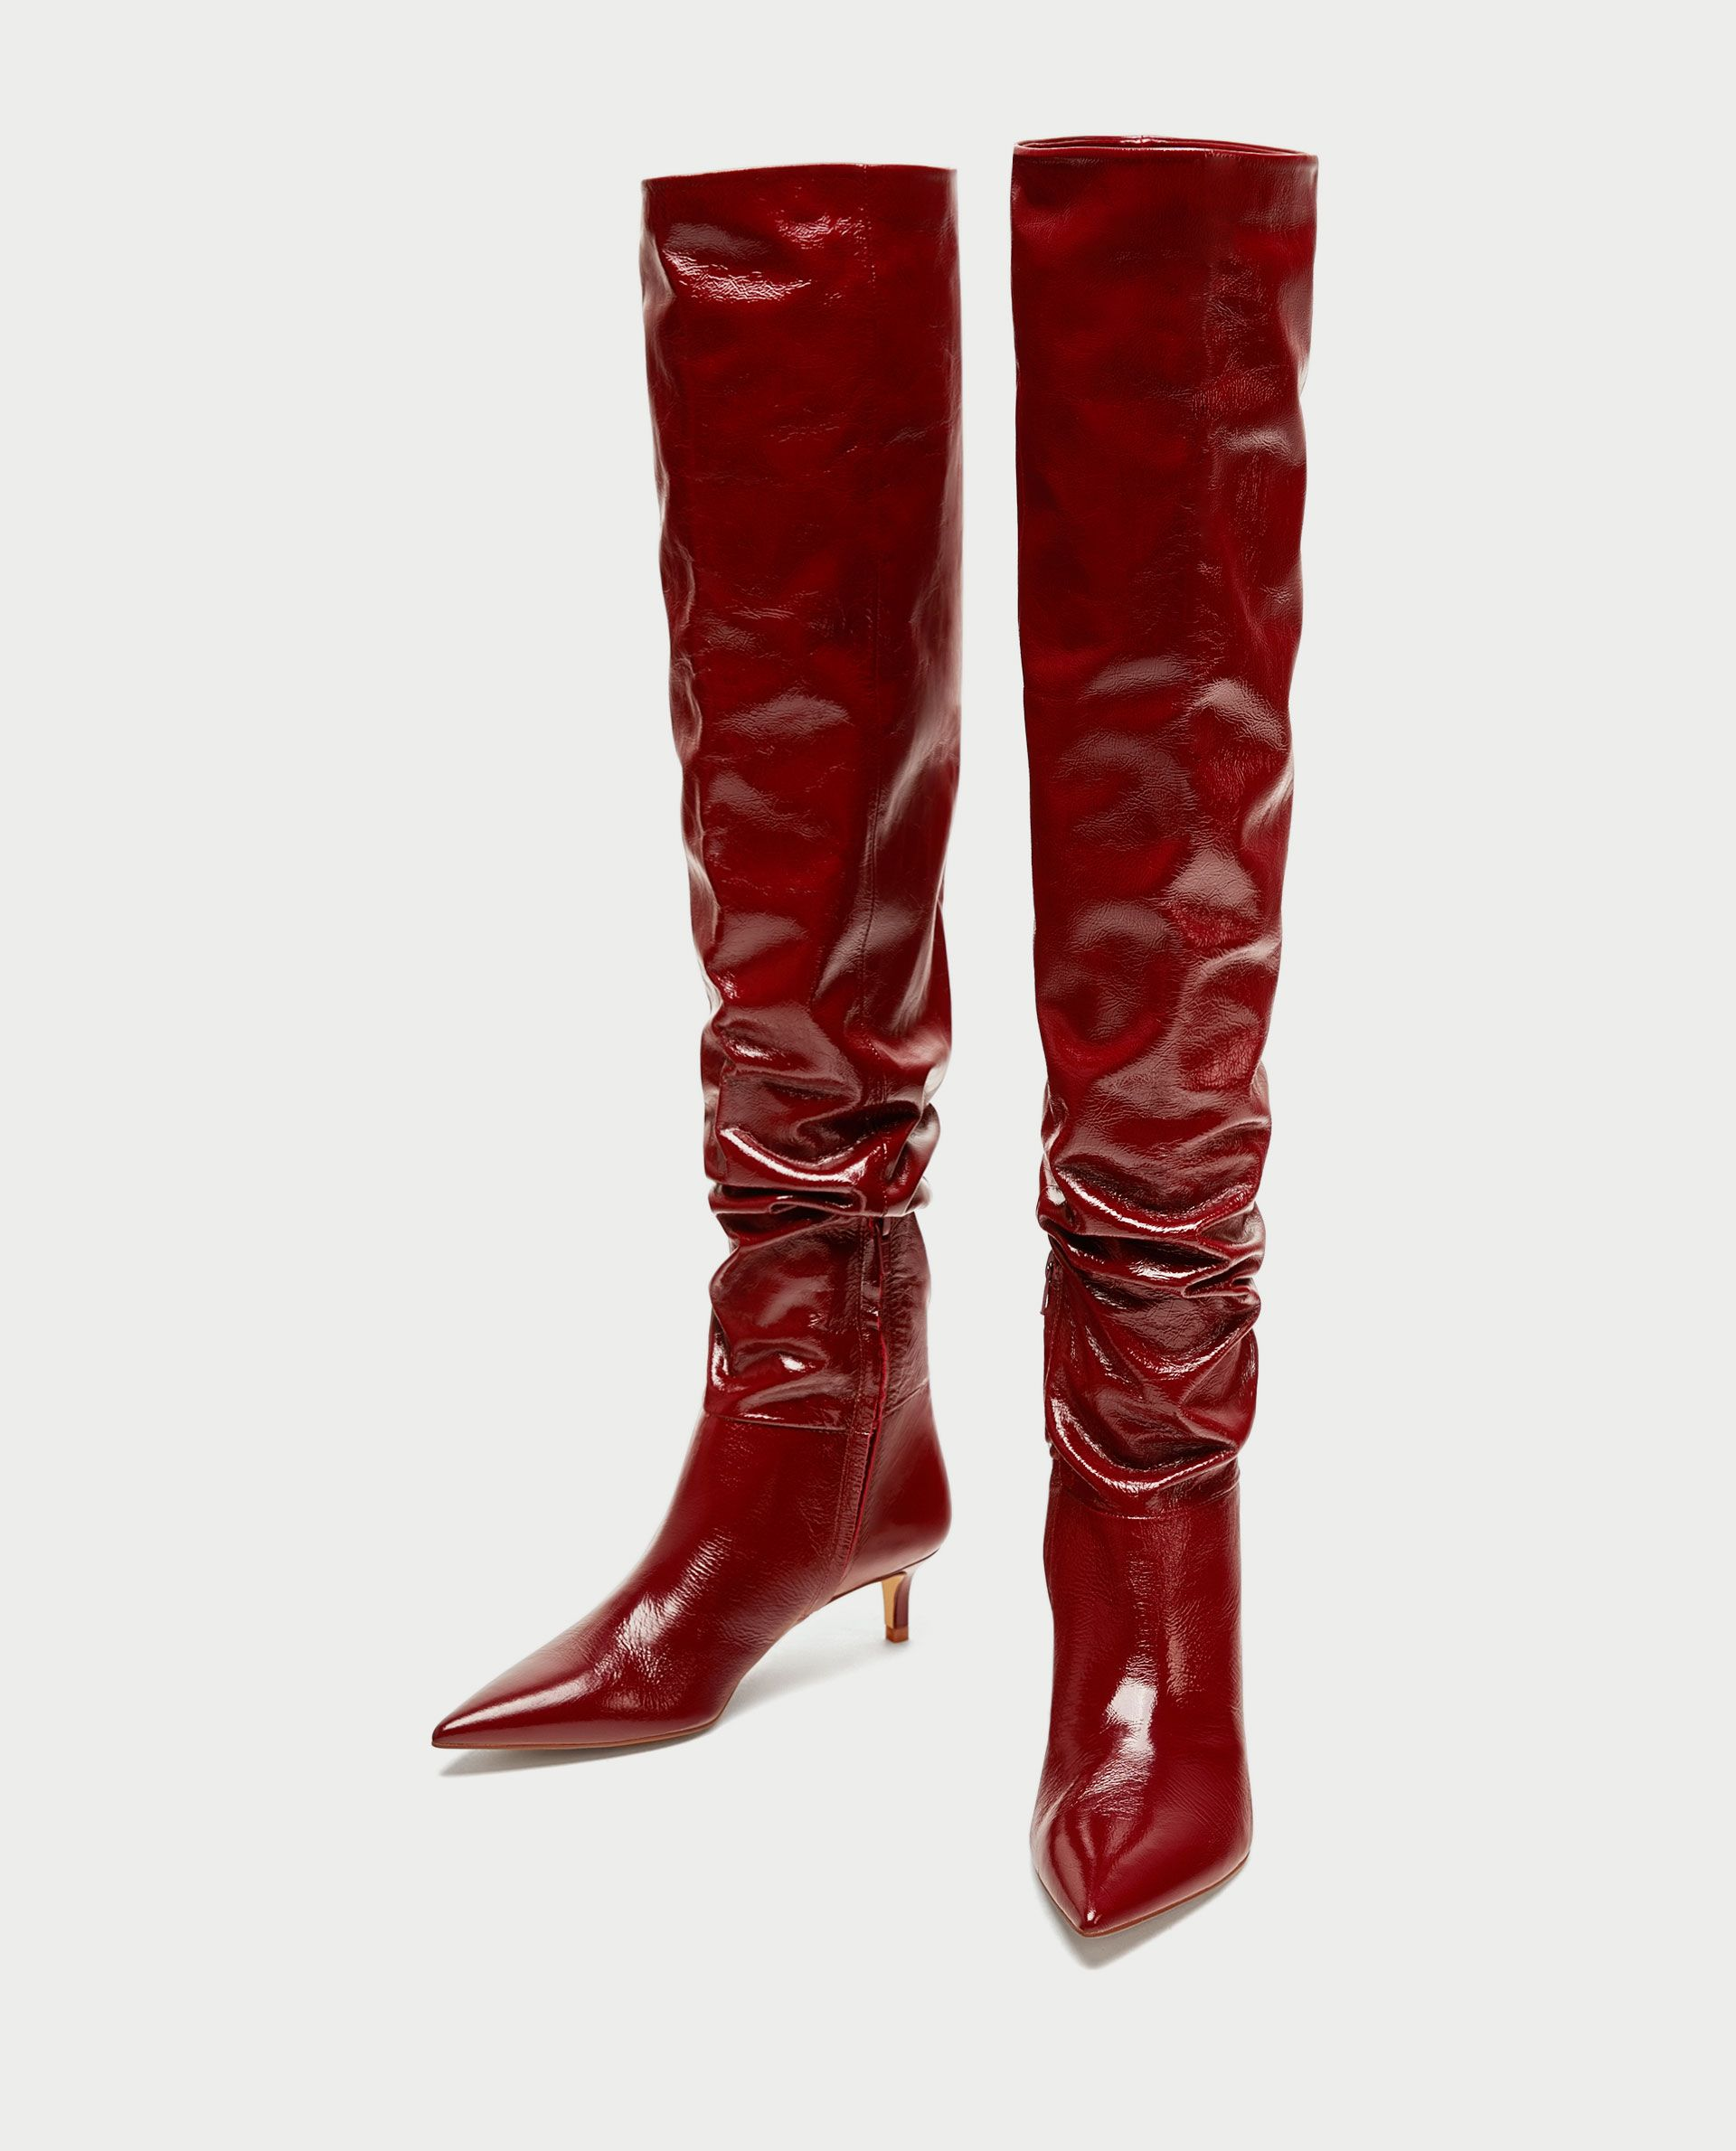 Zara GATHERED LEATHER OVER THE KNEE HIGH HEEL BOOTS 2018 For Sale Buy Cheap Largest Supplier Discount Aaa Many Kinds Of For Sale bzAJsO9EM0